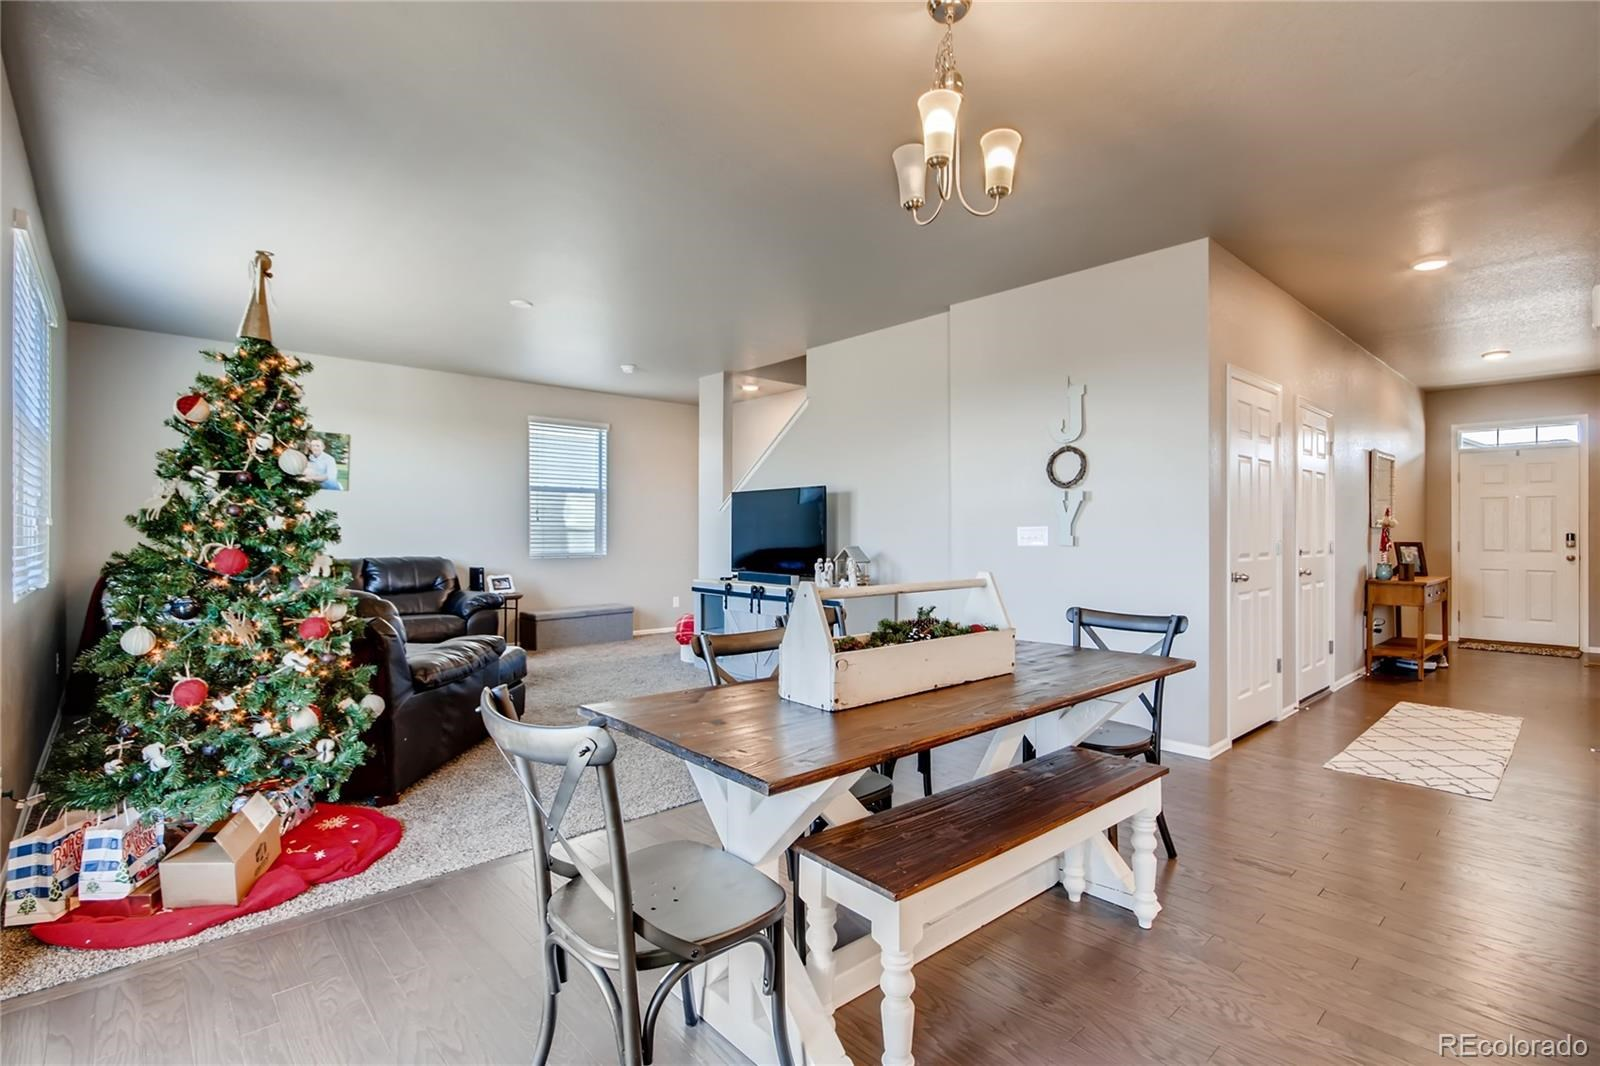 MLS# 8231798 - 14 - 6038 High Timber Circle, Castle Rock, CO 80104